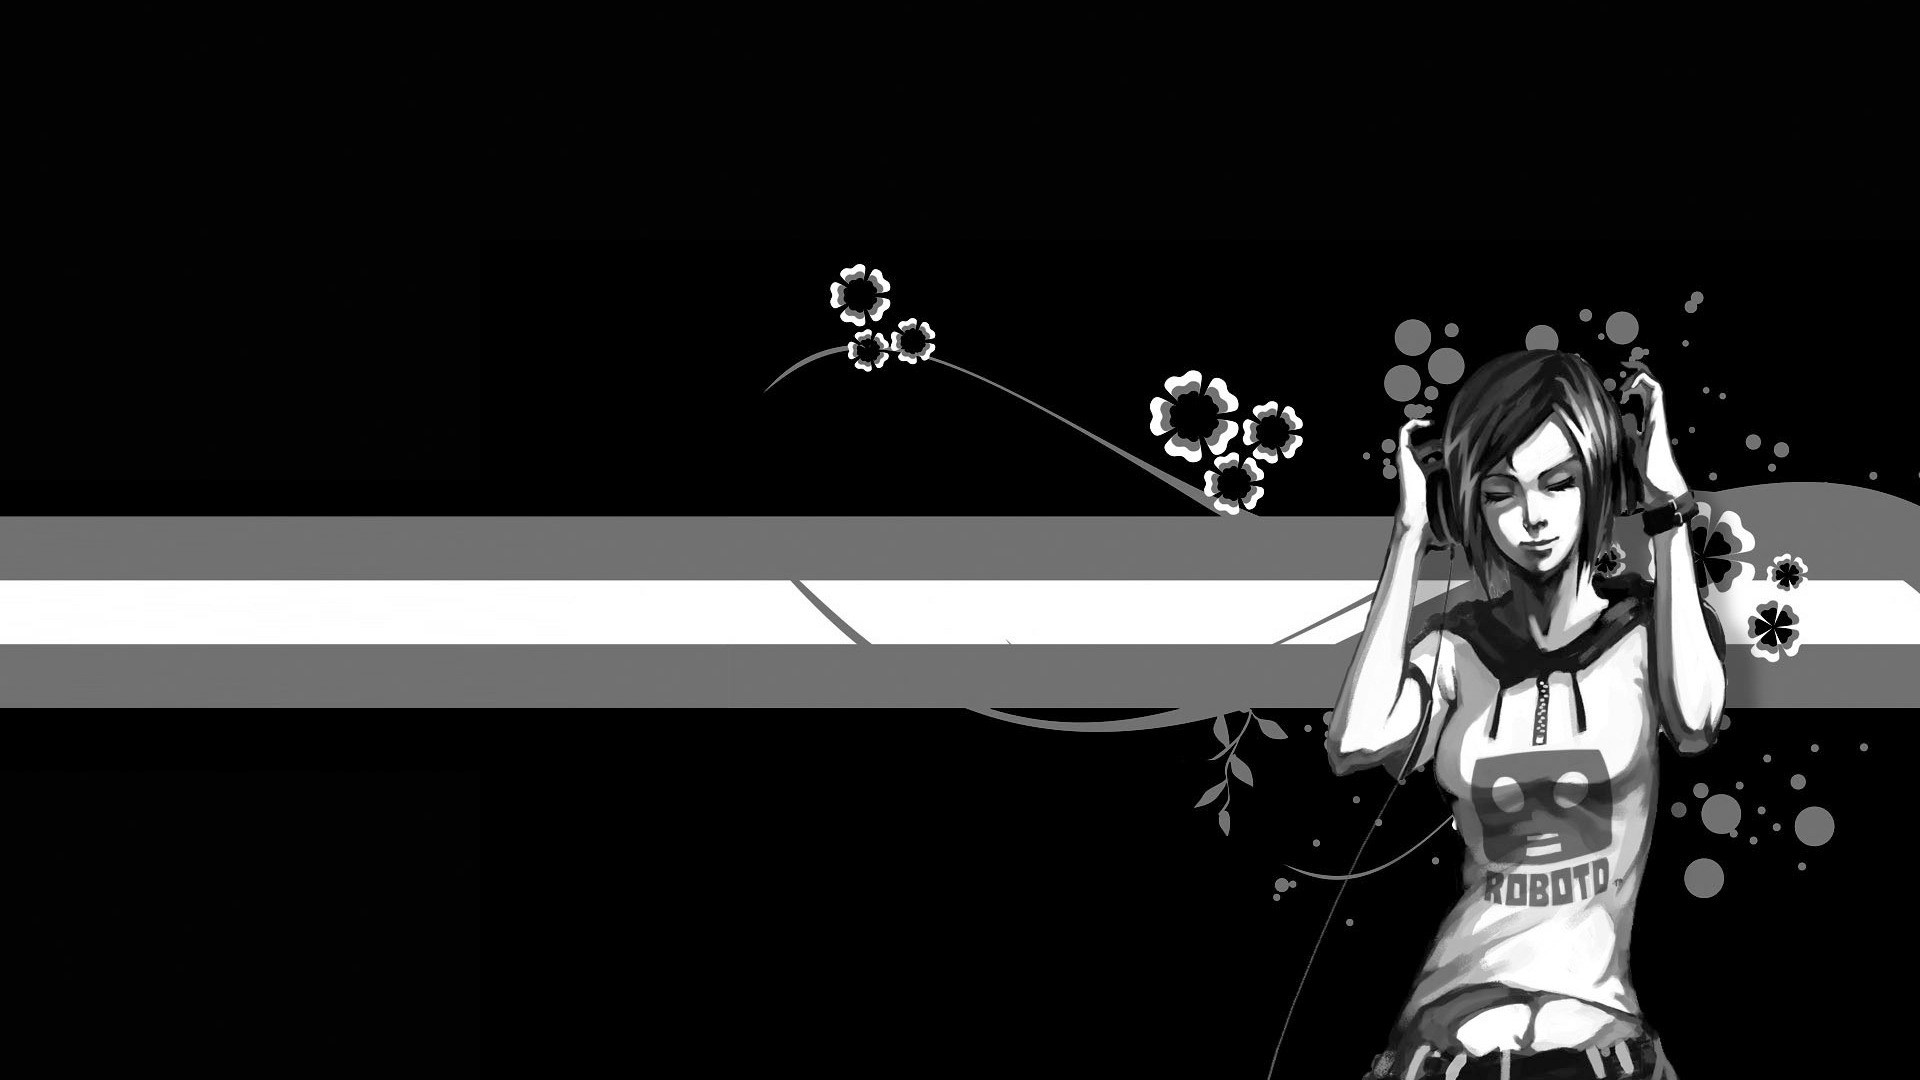 Anime Black And White Background Wallpaper